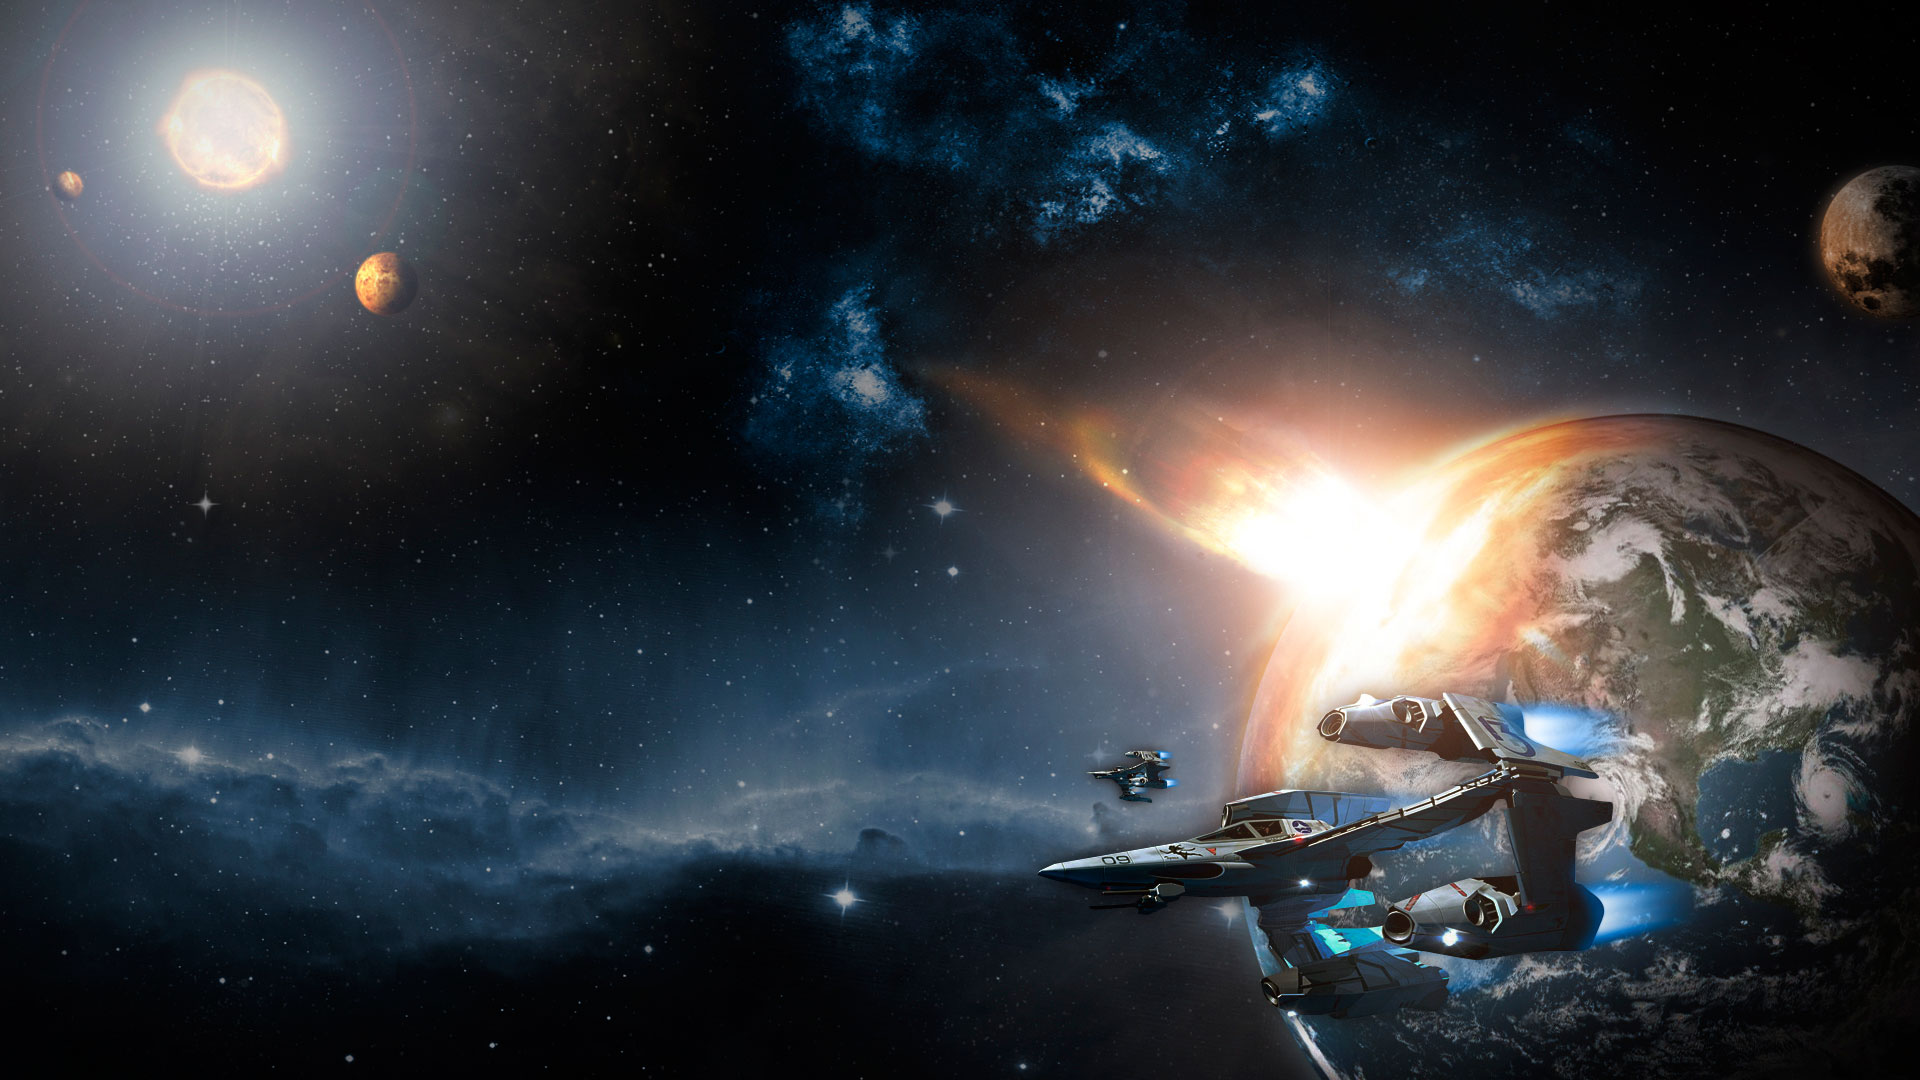 ... spaceship-wallpapers